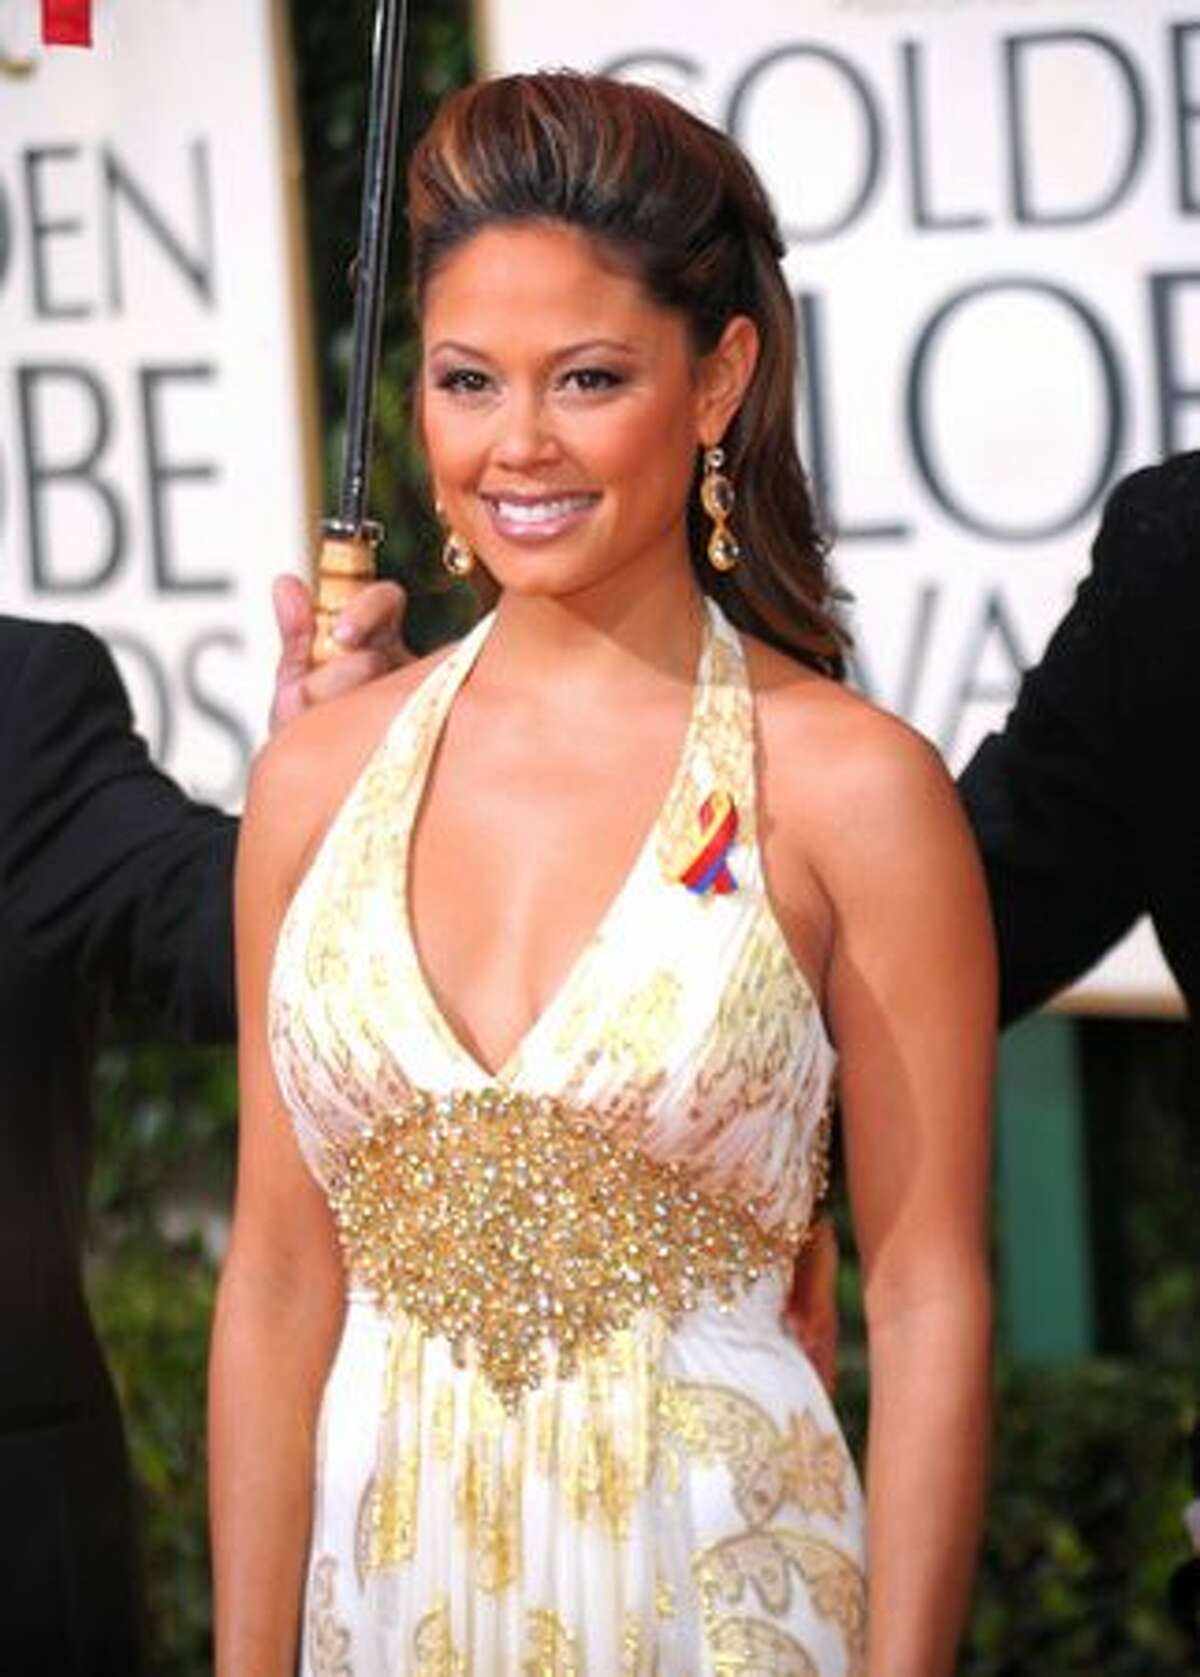 TV personality Vanessa Minnillo arrives at the 67th Annual Golden Globe Awards held at The Beverly Hilton Hotel in Beverly Hills, California.